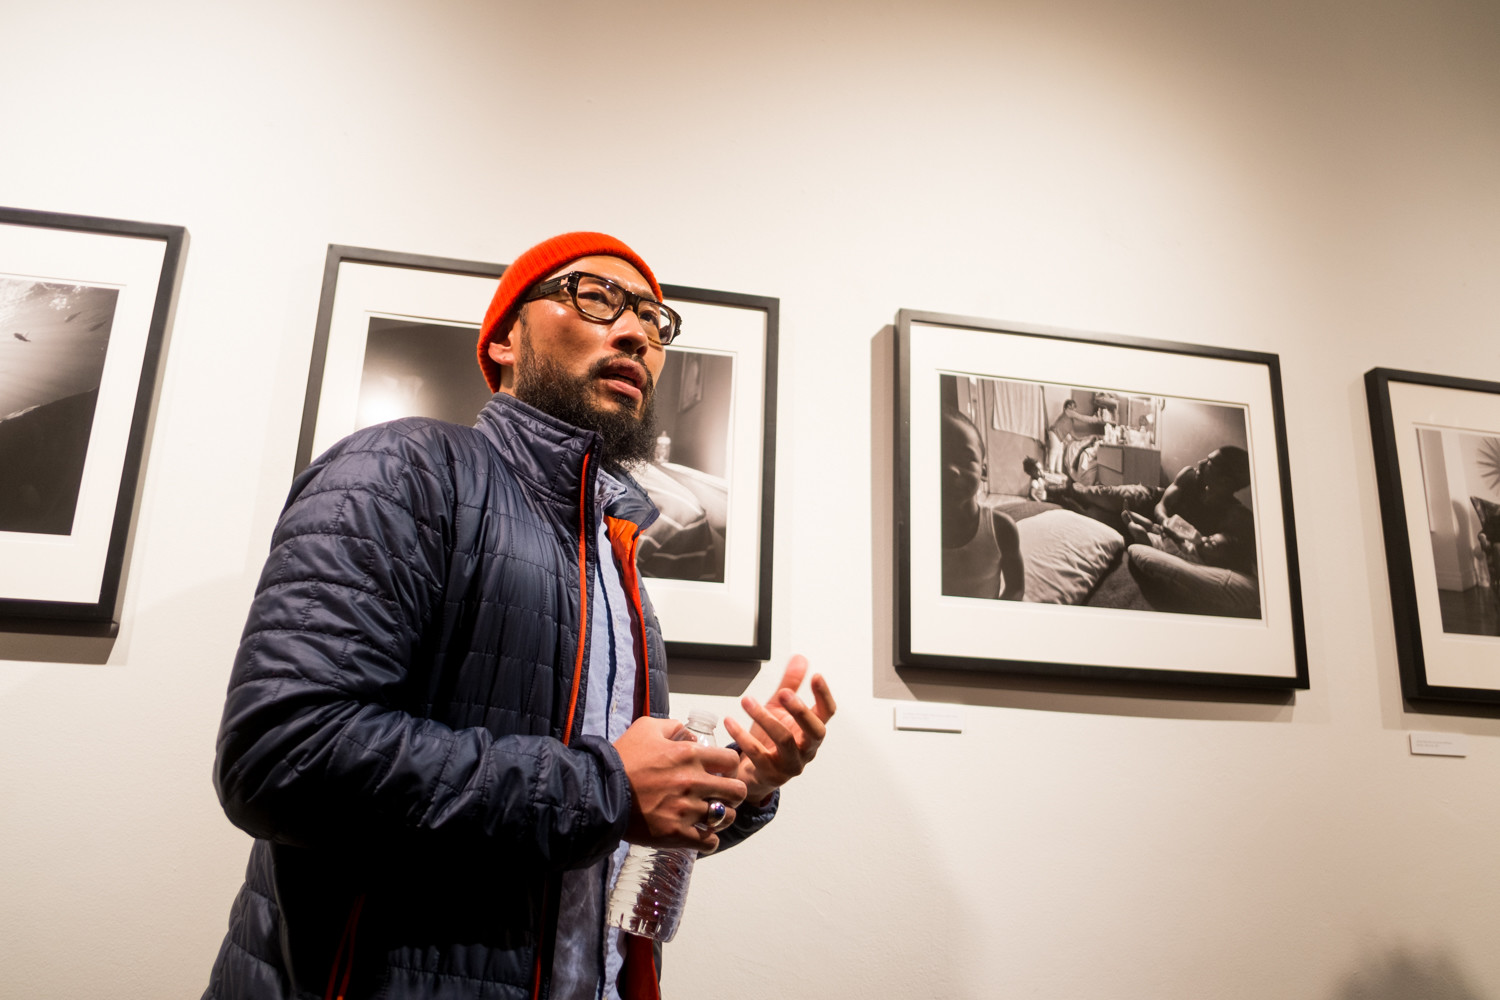 Zun Lee talks about working on his project 'Father Figure: Exploring Alternate Notions of Black Masculinity' at the opening of his exhibition at the Bronx Documentary Center. It is on display until March 31.